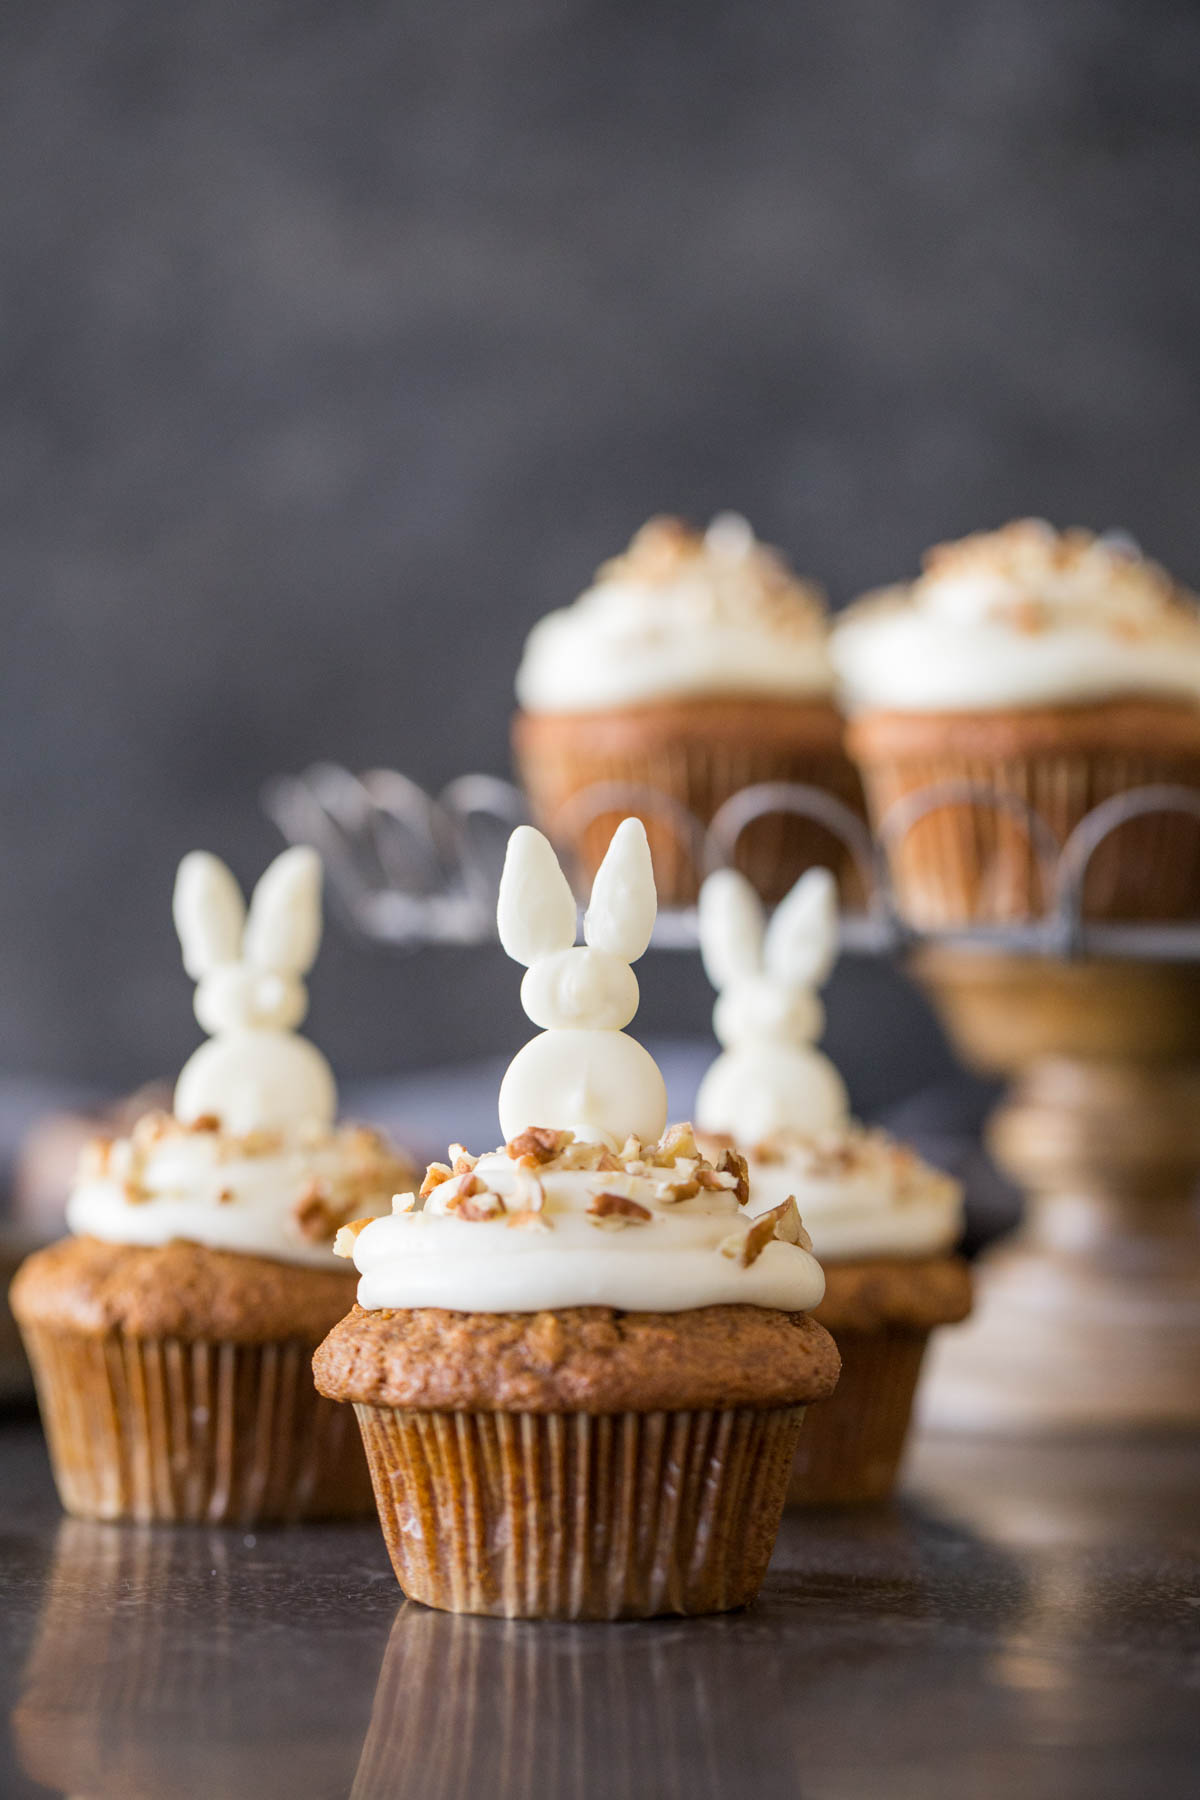 Three Carrot Cake Cupcakes with white chocolate bunnies on top, and more cupcakes on a cake stand in the background.